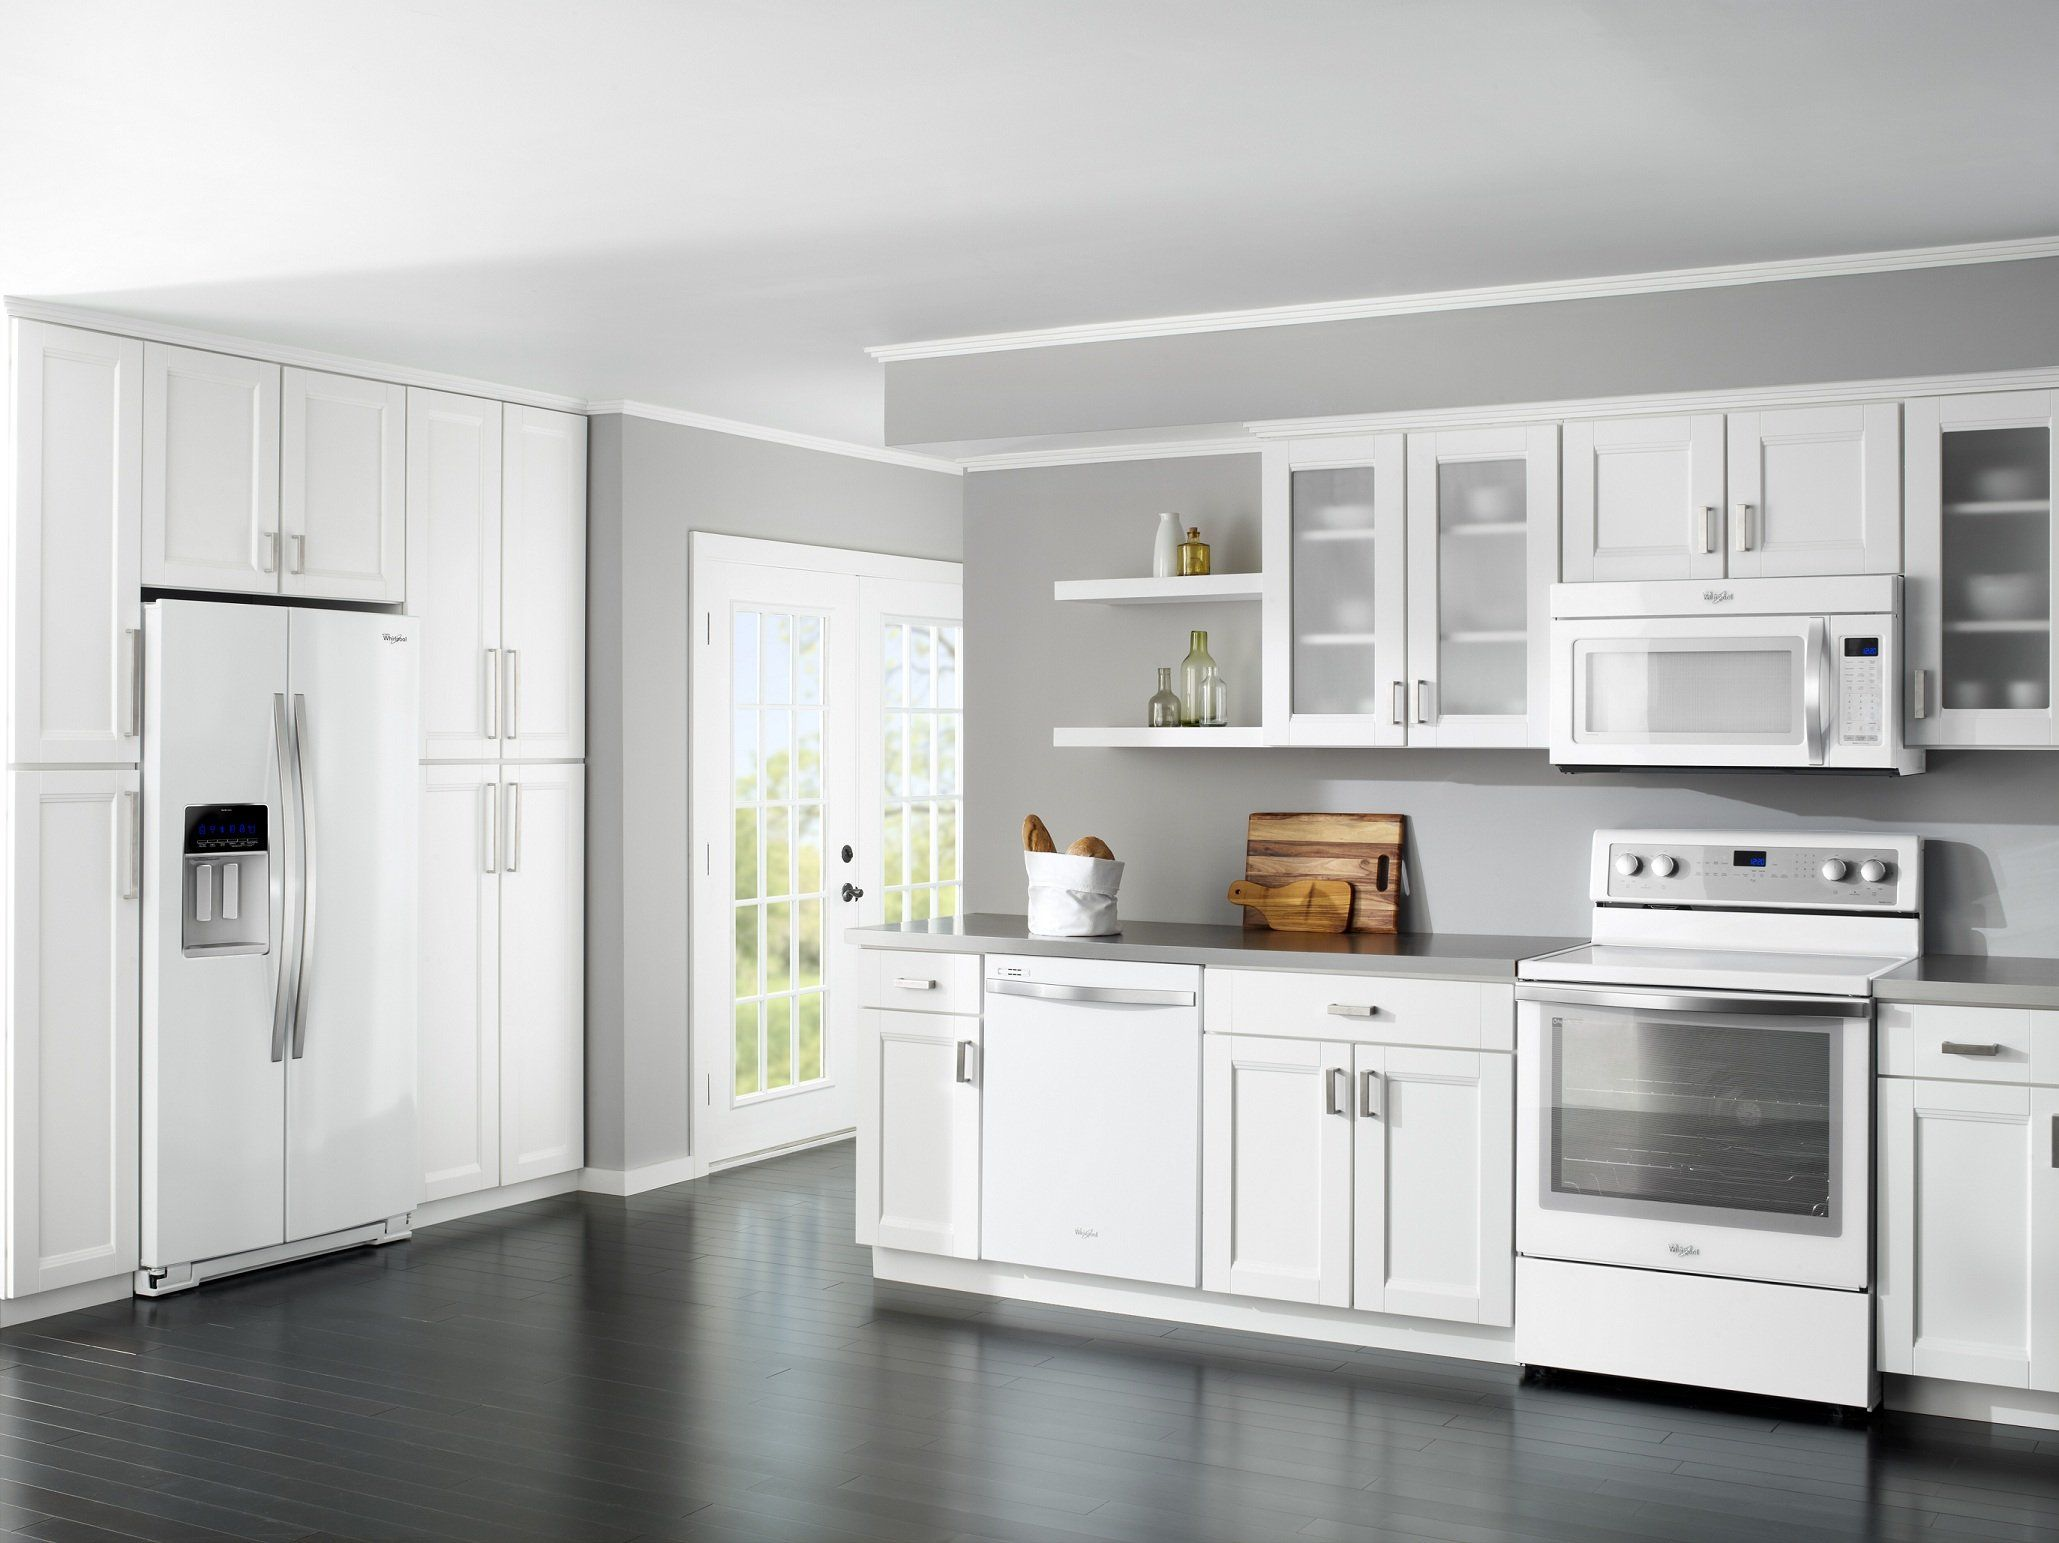 White Kitchen White Floor 10 Of The Worlds Most Spectacular Libraries Grey Walls Stove